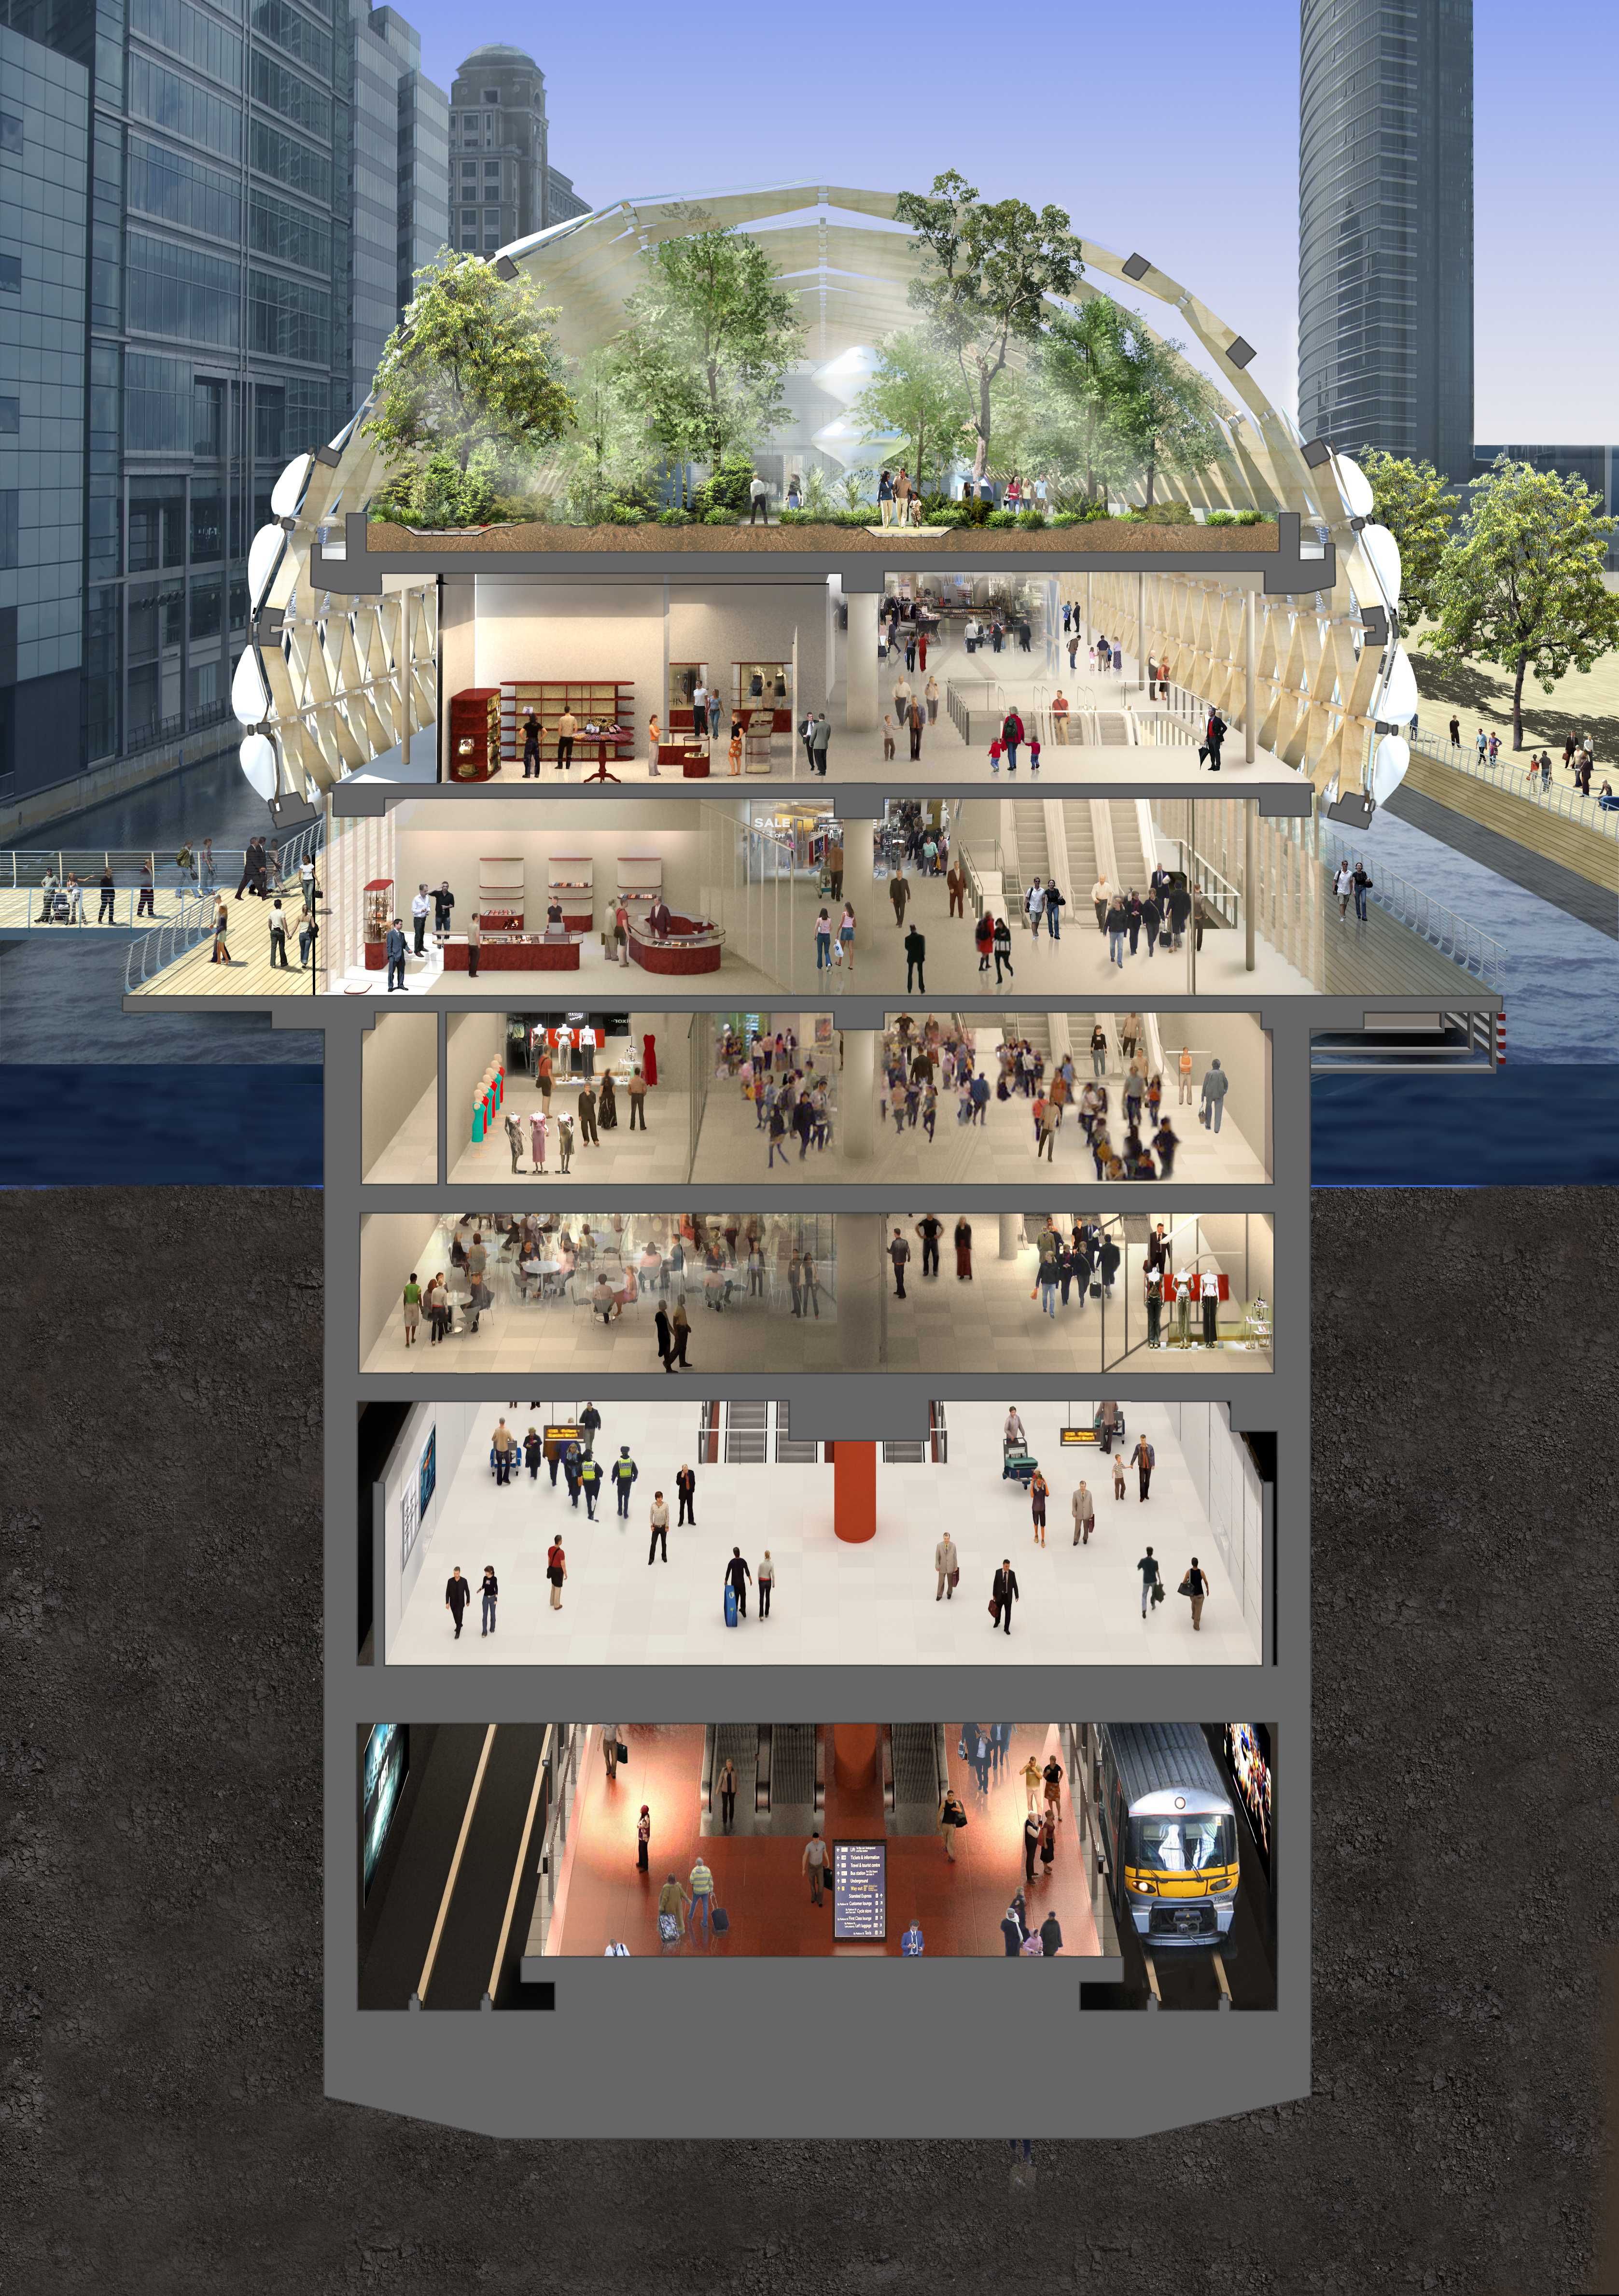 Canary Wharf Crossrail Station - Creating spaces, leading regeneration and boosting economy